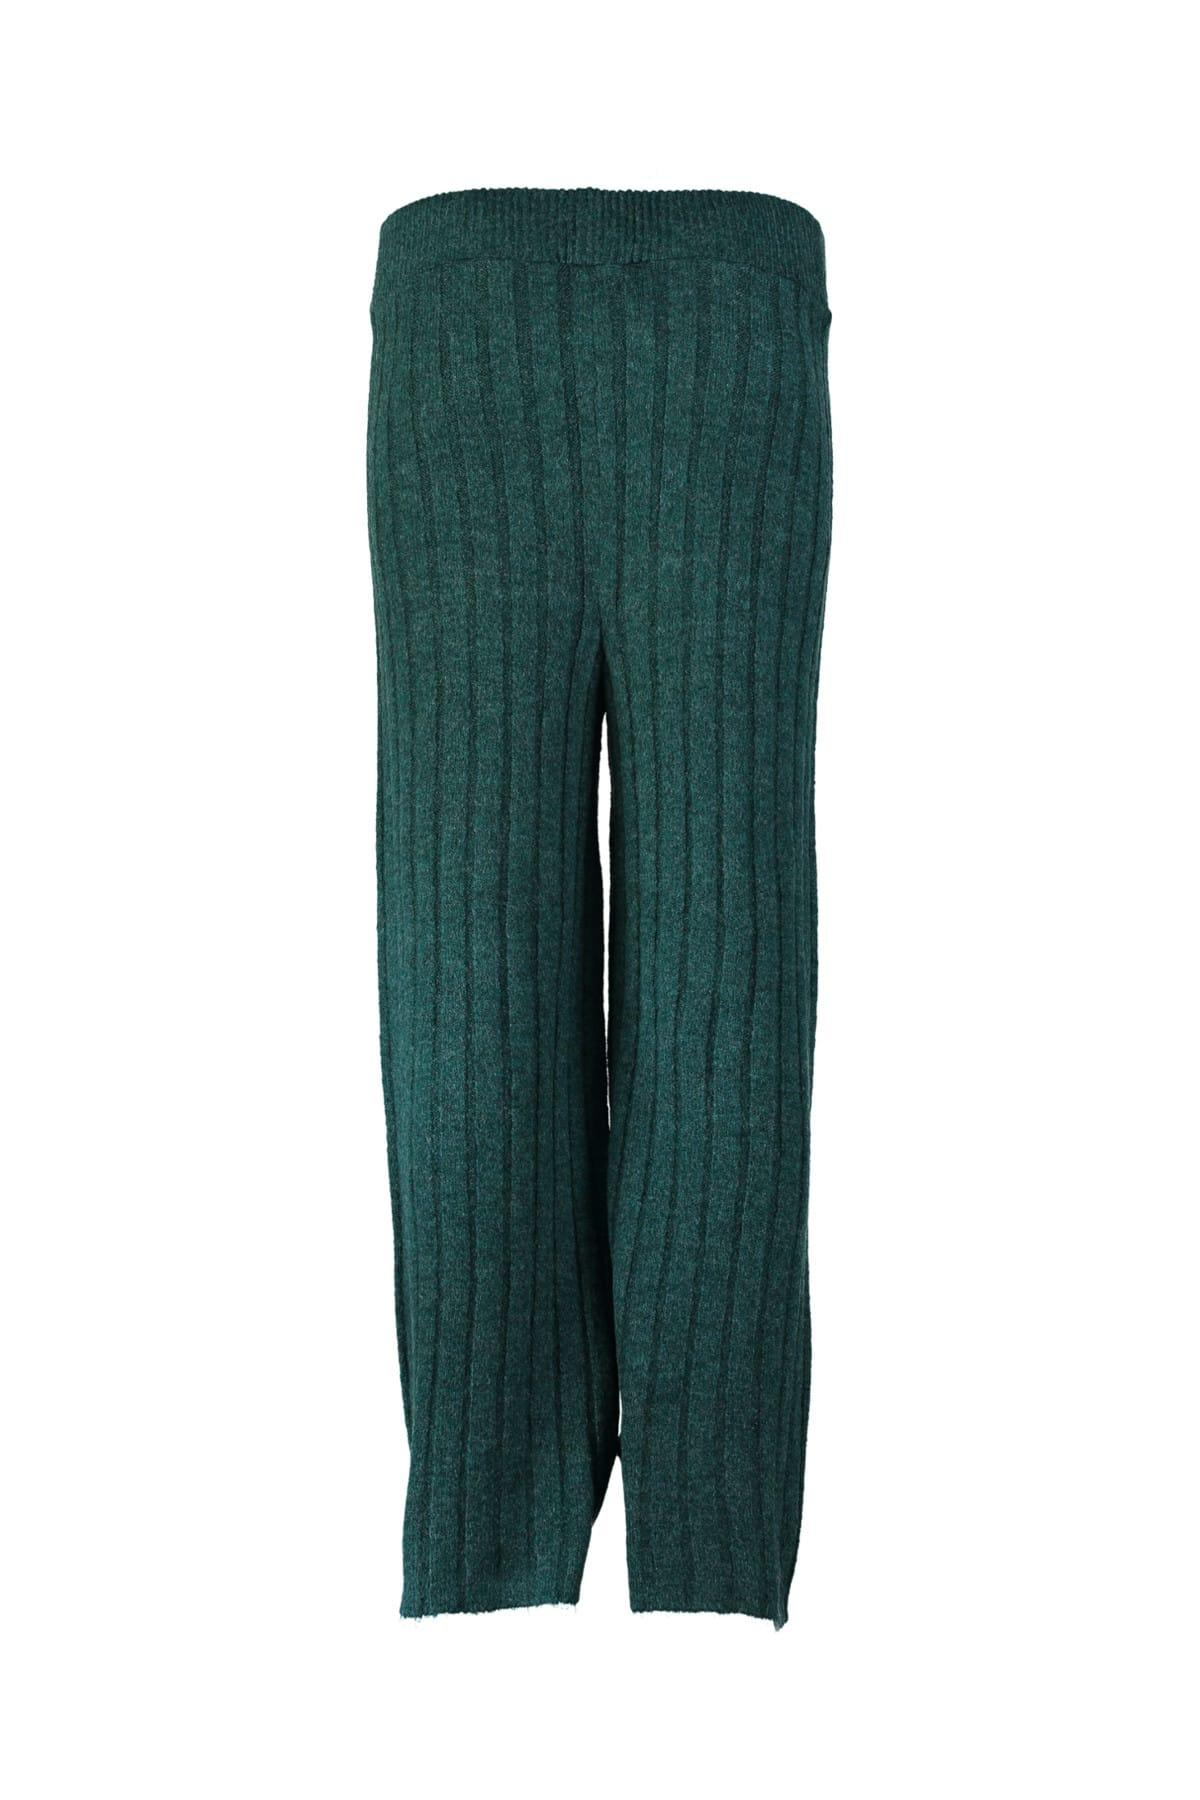 Trendyol WOMEN-Green Ribbed Sweater Pants TWOAW20ZA0036